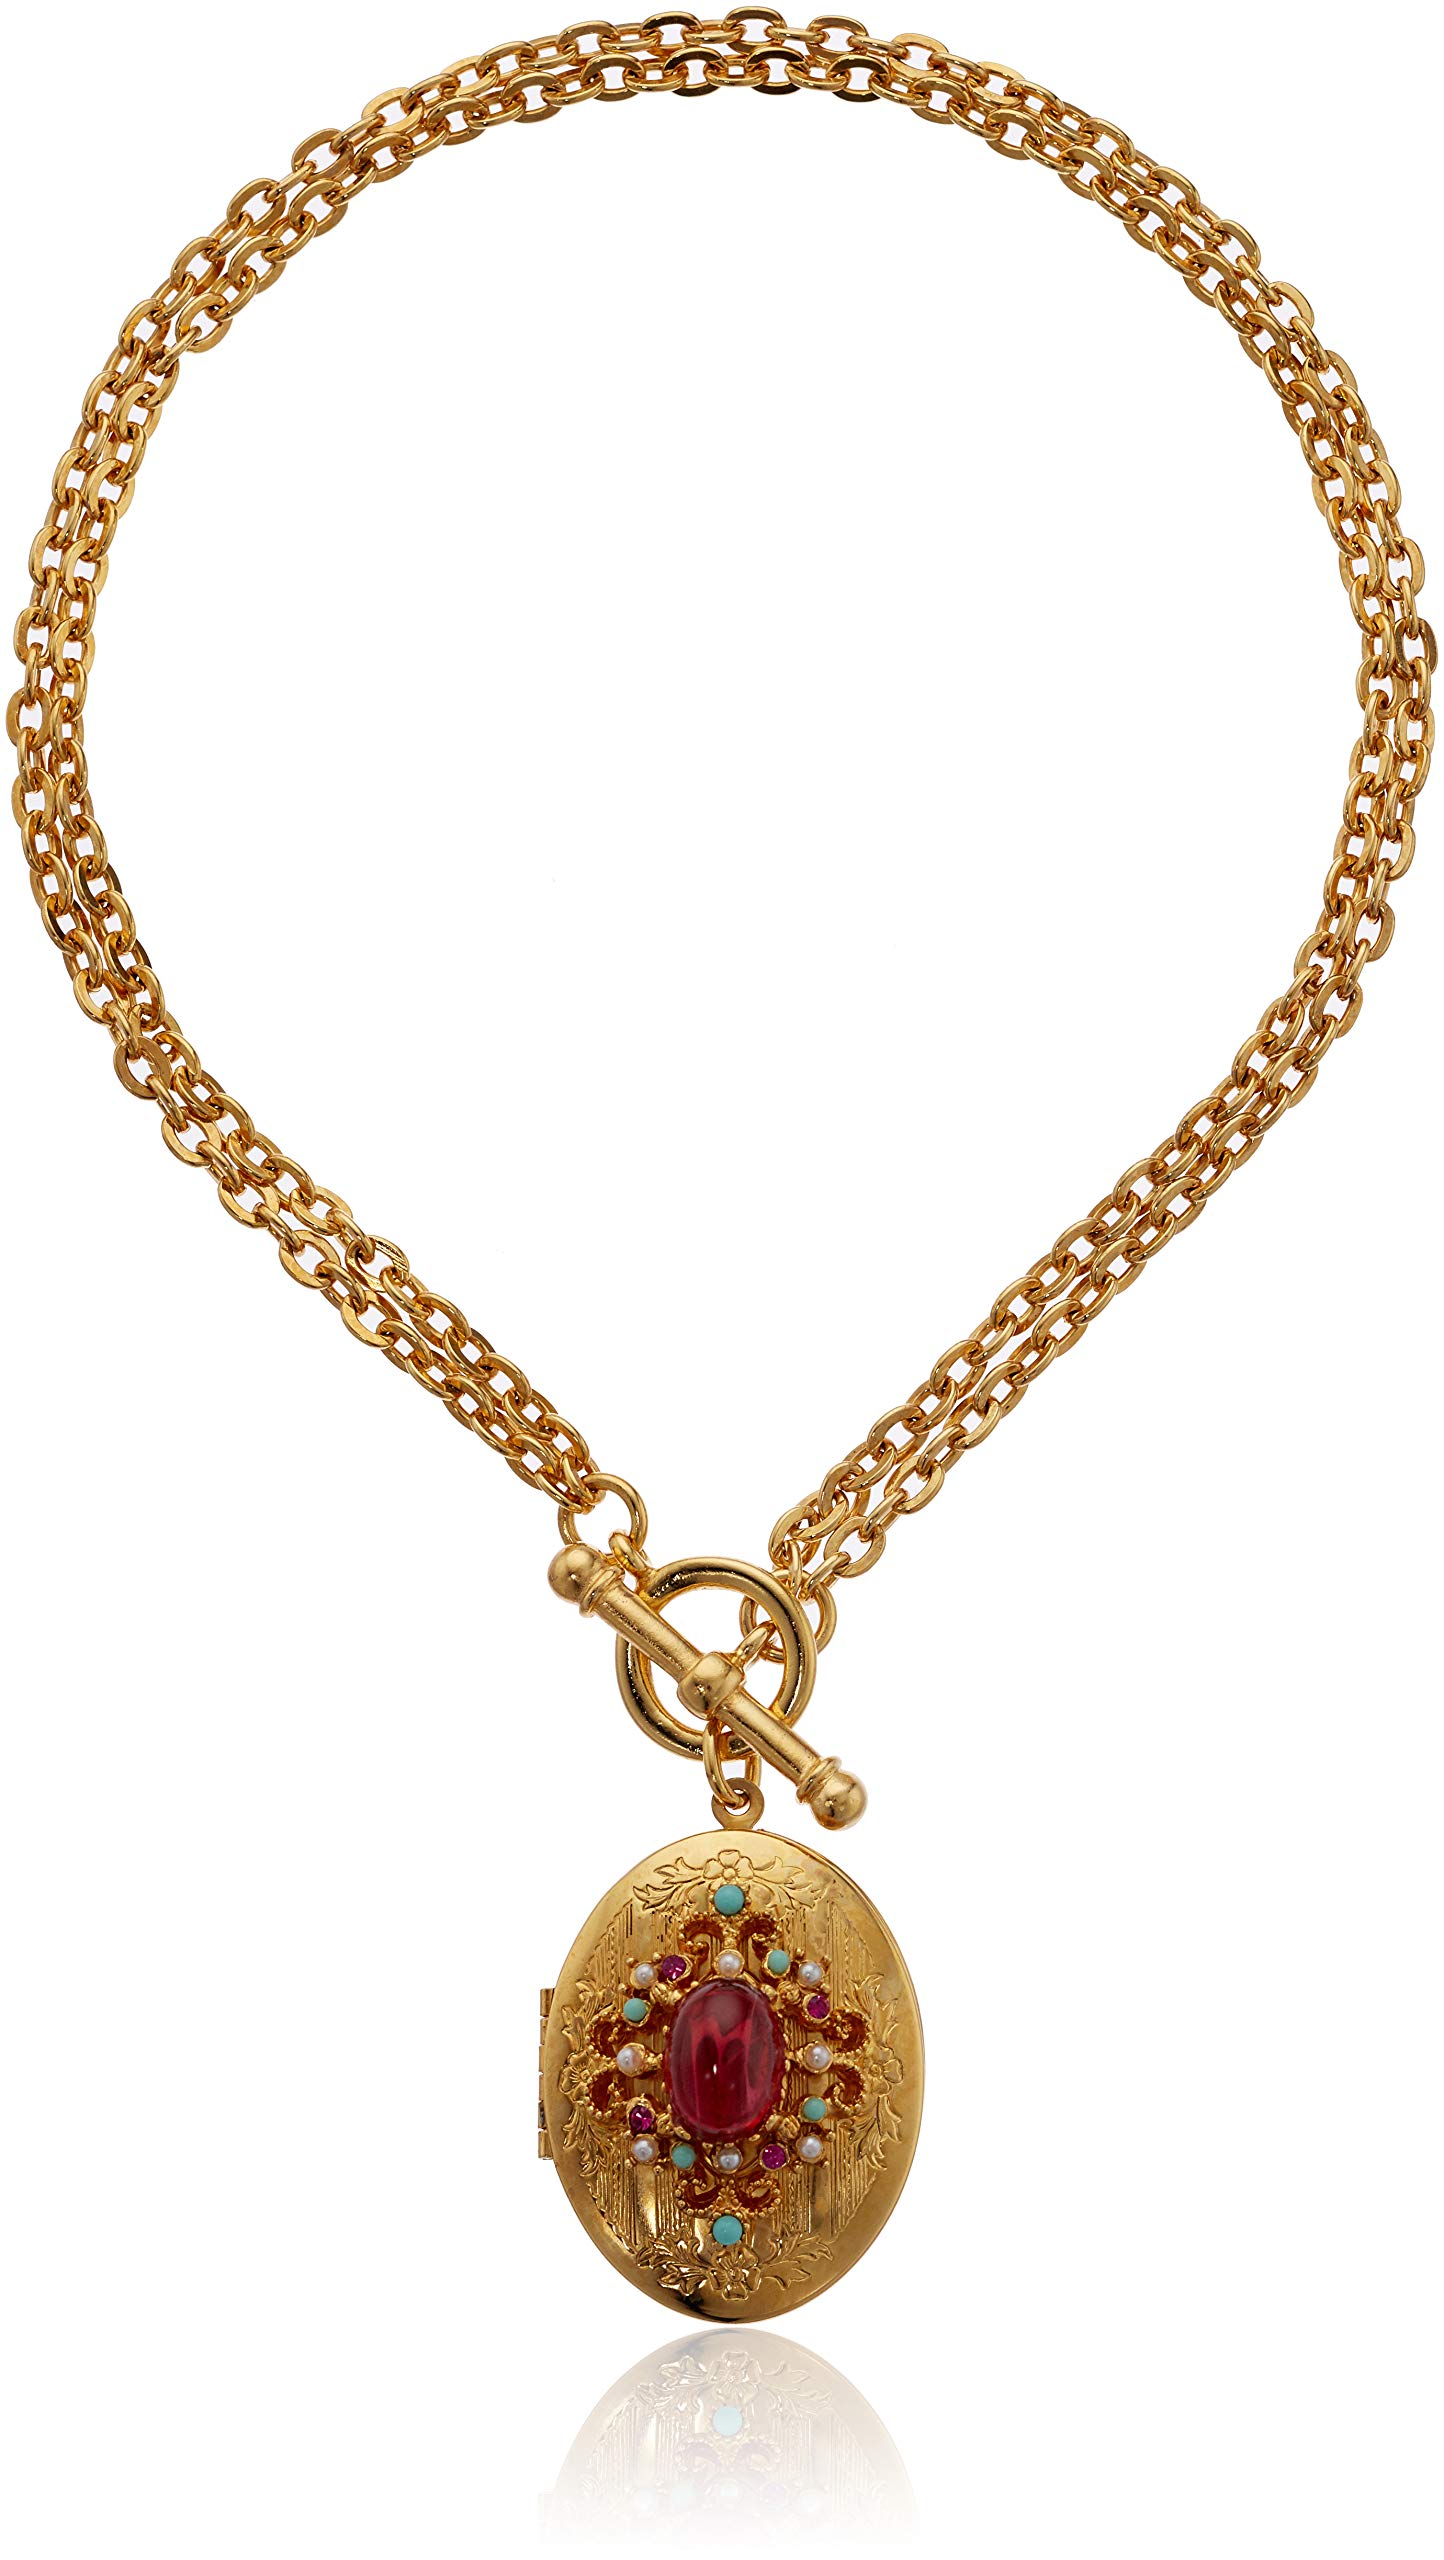 Ben-Amun Jewelry Royal Charm Ruby Stone Gold Locket Toggle Necklace, 16'' Length, Gold, One Size by Ben-Amun Jewelry